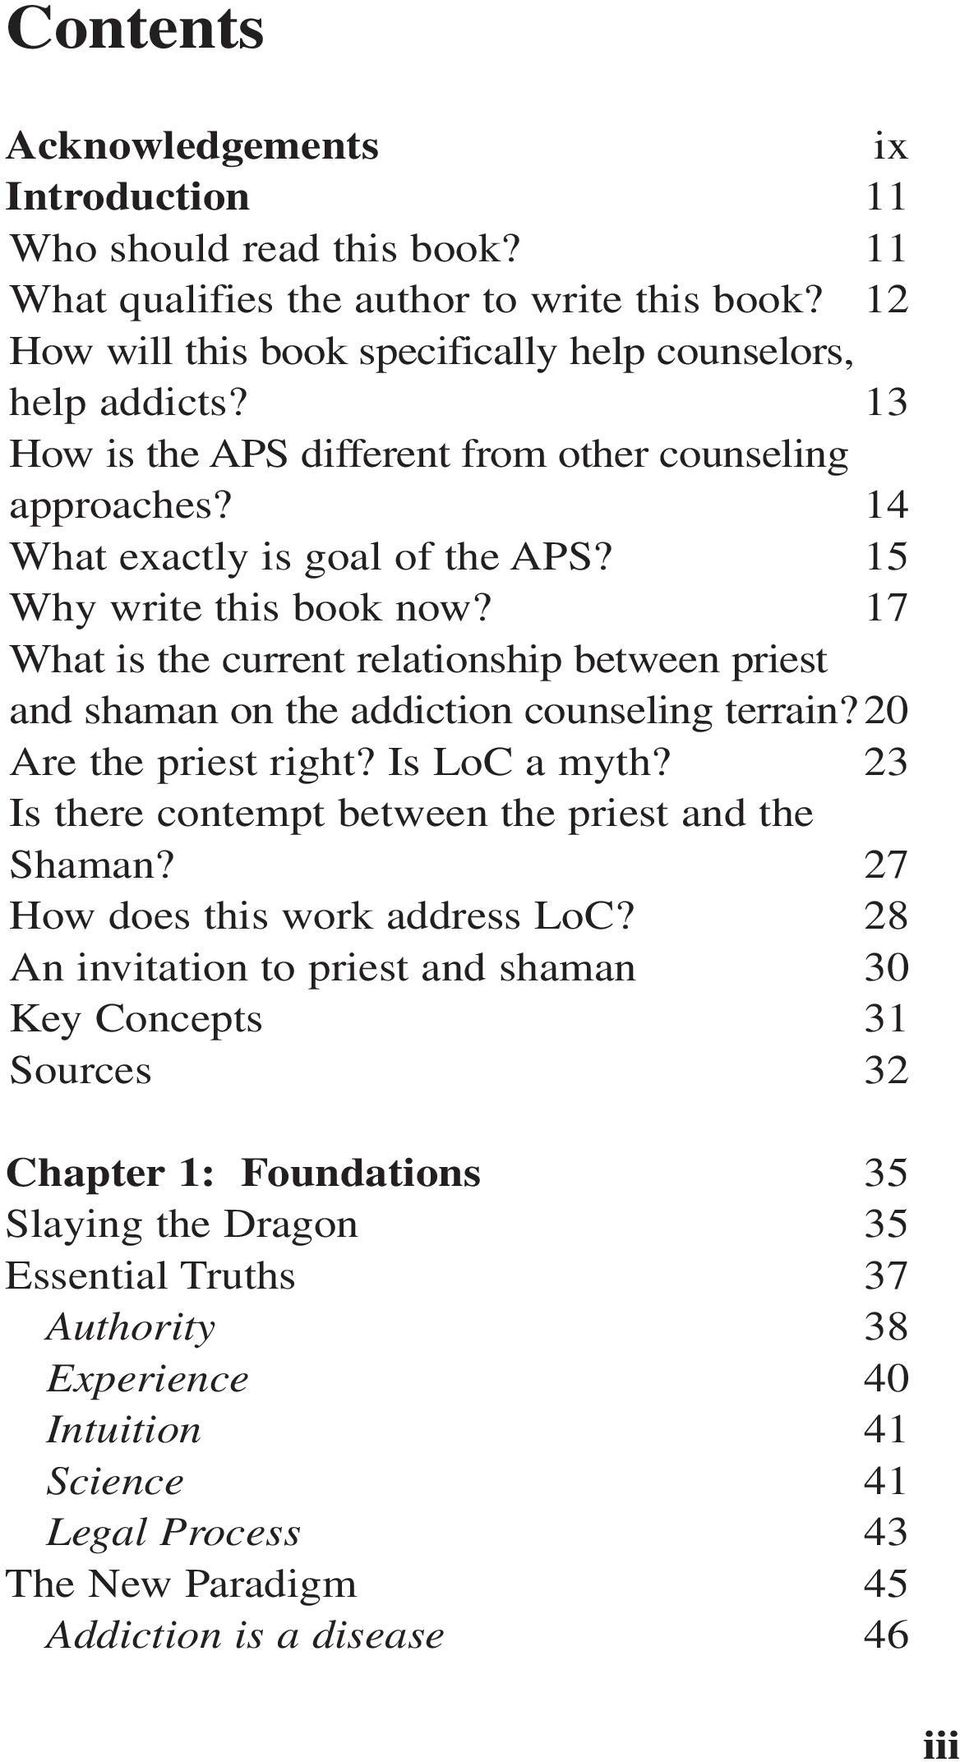 17 What is the current relationship between priest and shaman on the addiction counseling terrain?20 Are the priest right? Is LoC a myth? 23 Is there contempt between the priest and the Shaman?